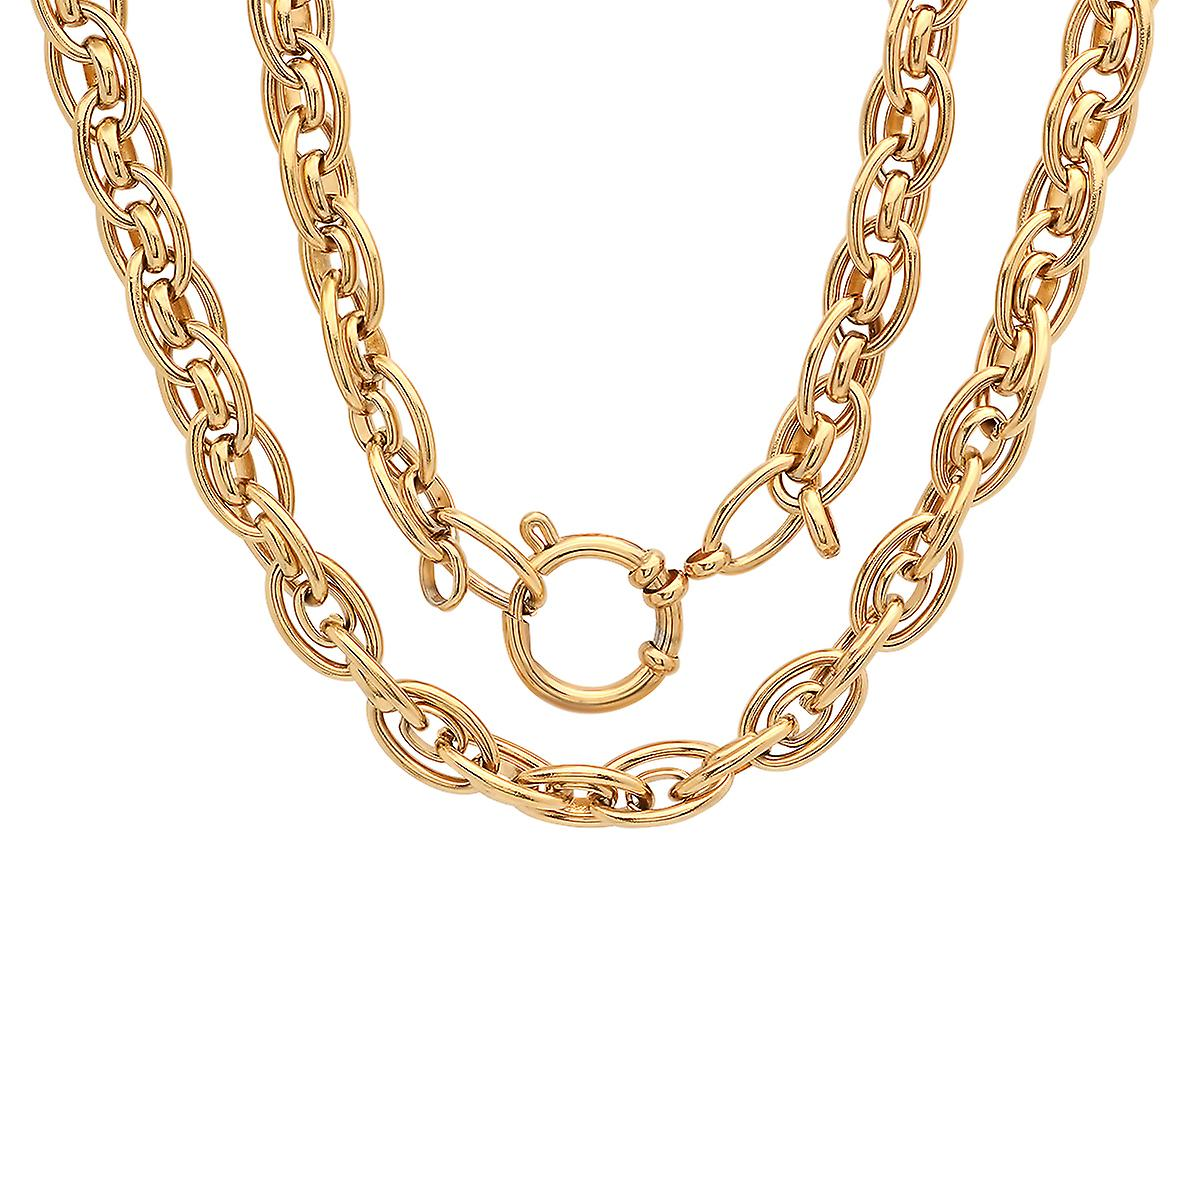 Ladies 18K Gold Plated Stainless Steel Cluster Chain Link Necklace